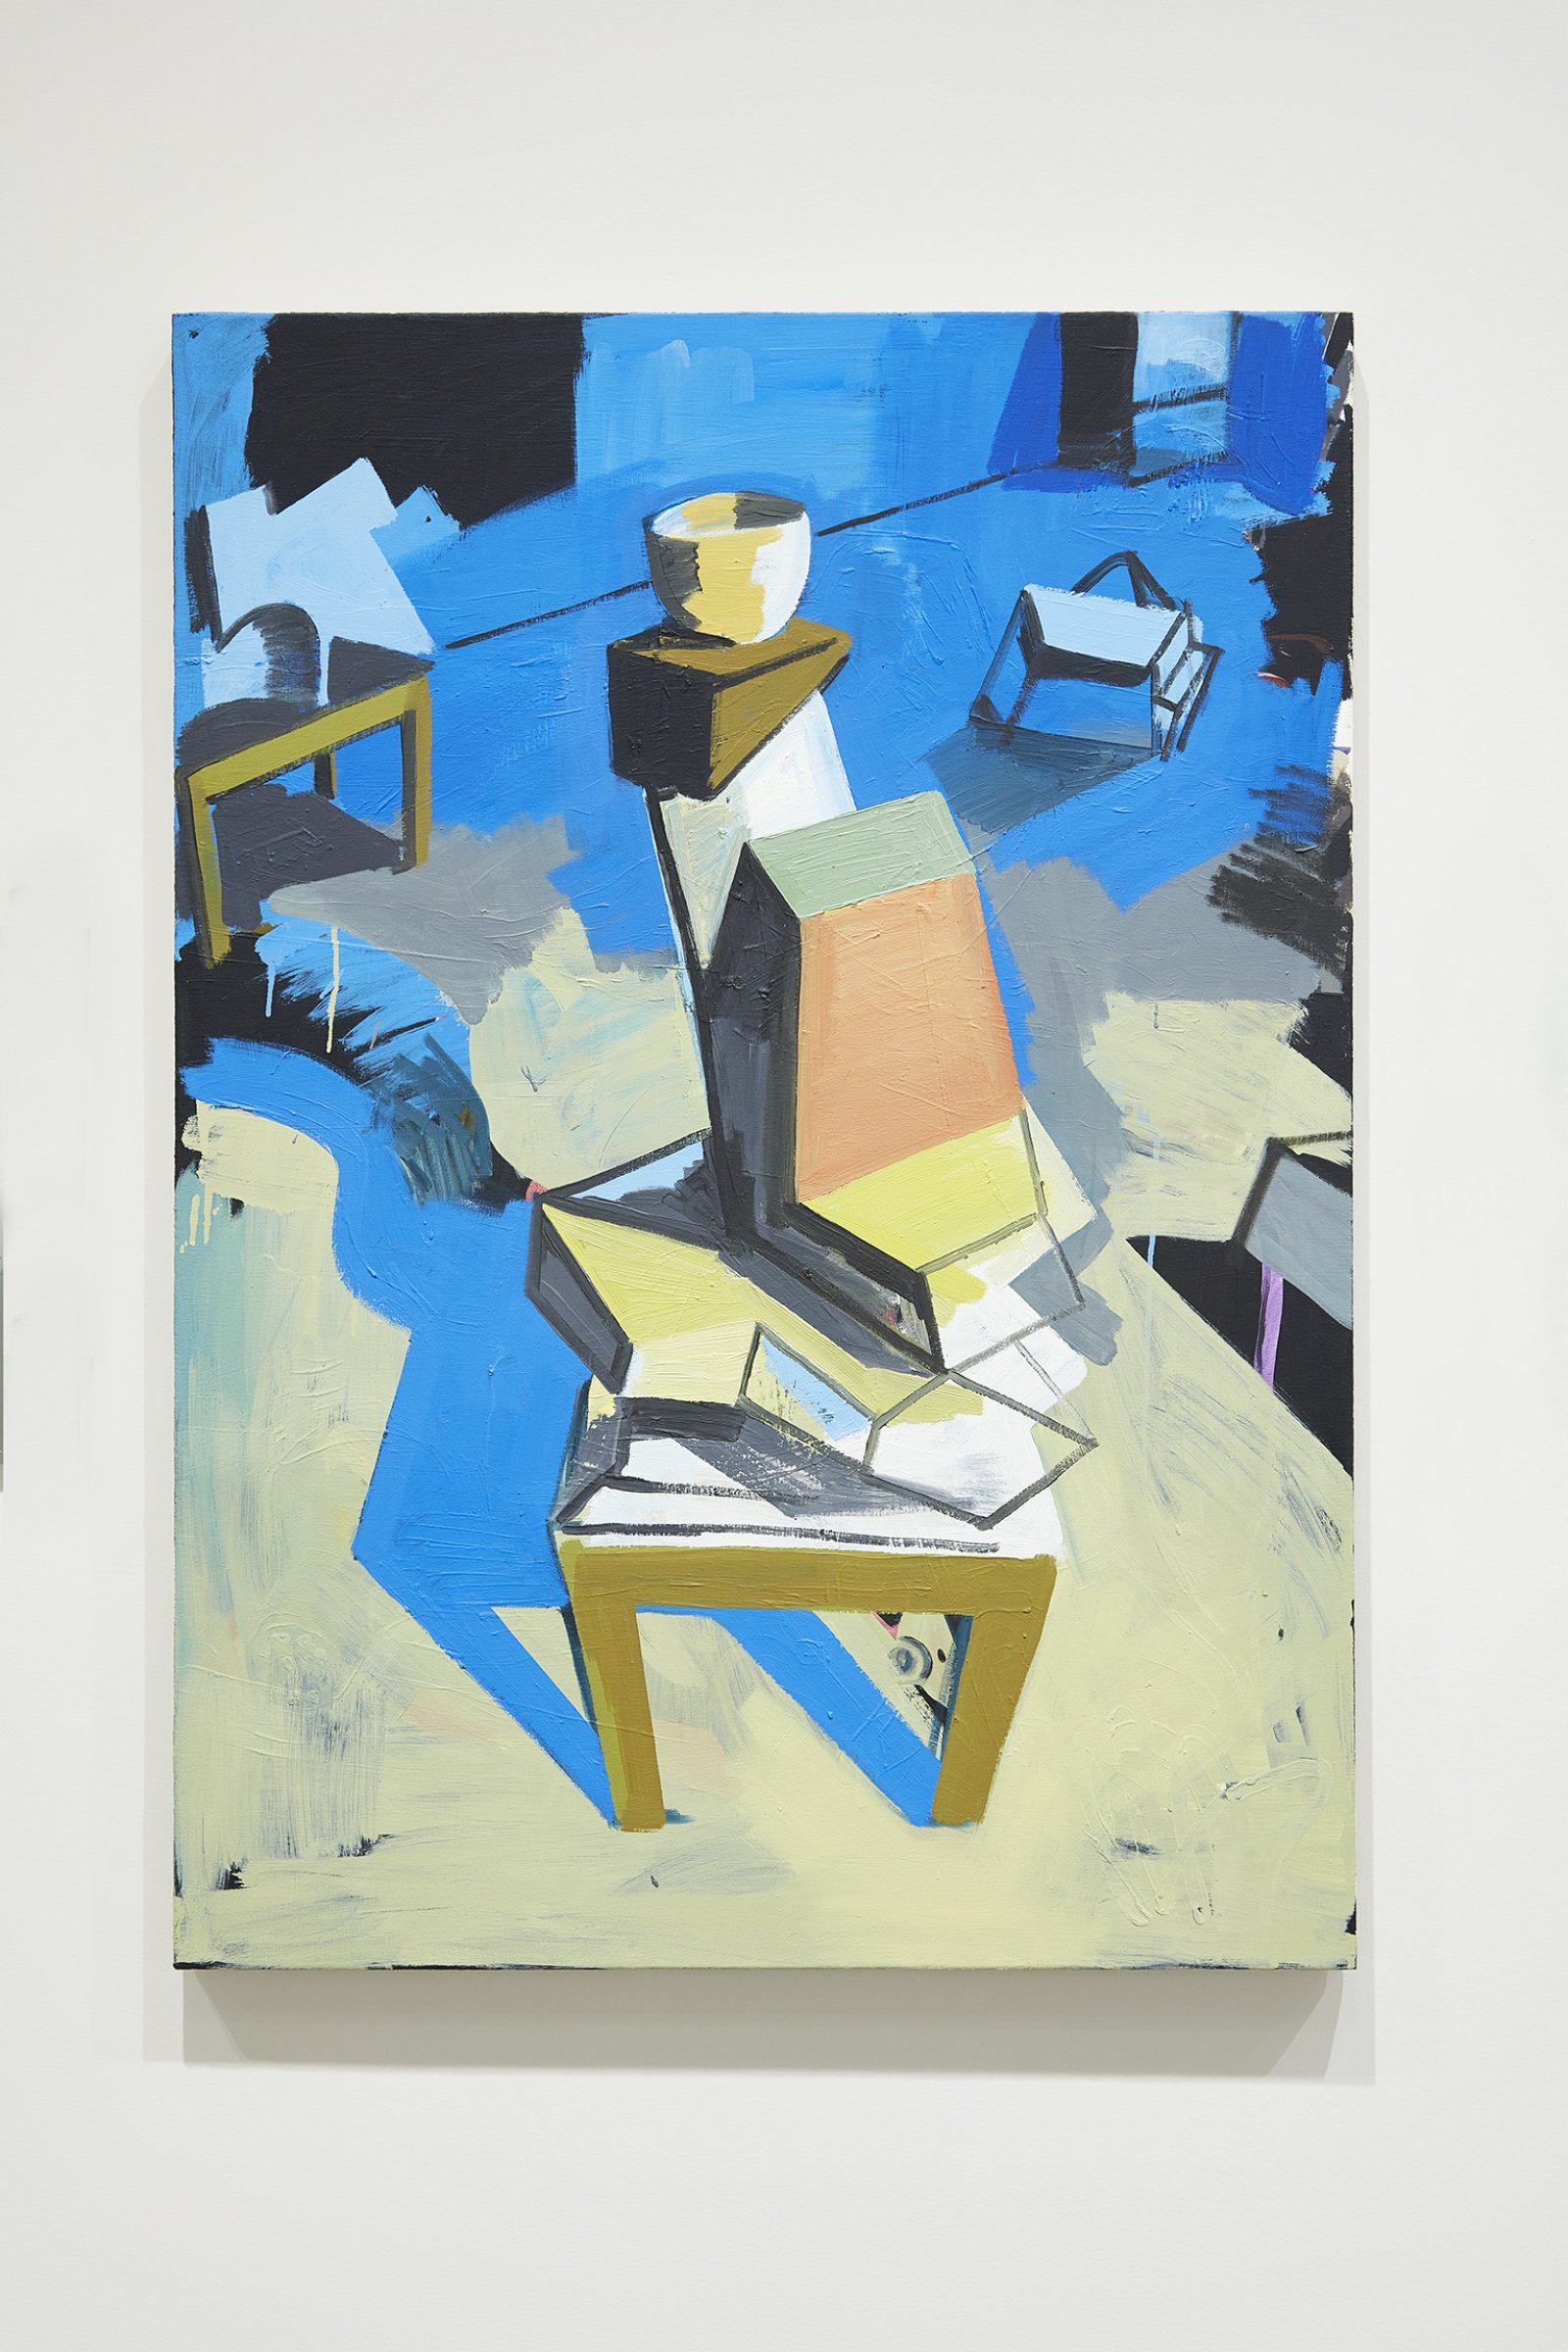 Damian Moppett, Abstract Acrobat in Blue Studio, 2008, oil on linen, 42 x 30 in. (107 x 76 cm). Installation view, Every Story Has Two Sides, Art Gallery of Alberta, Edmonton, 2016 by Damian Moppett